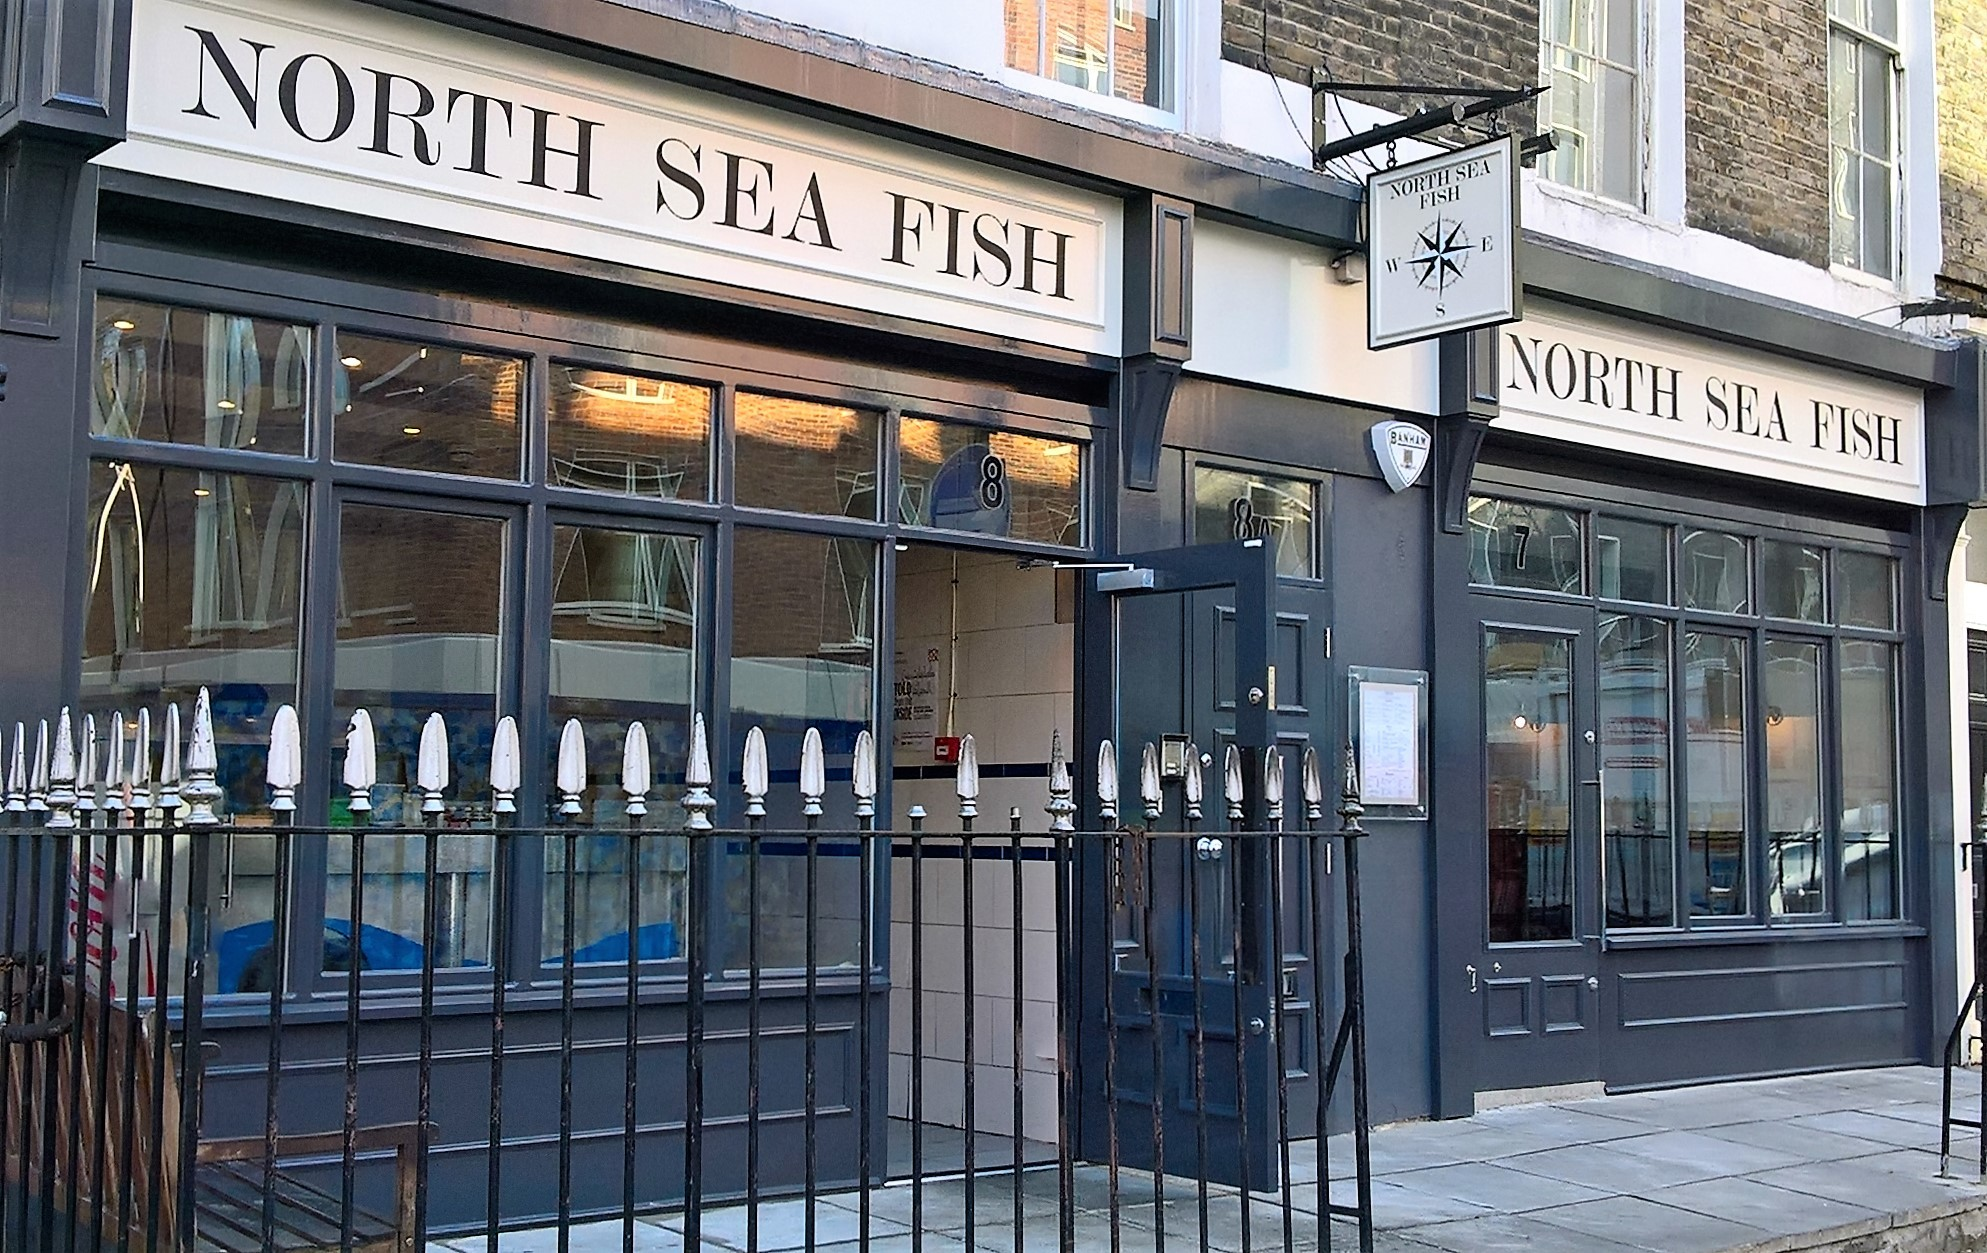 North Sea Fish Restaurant